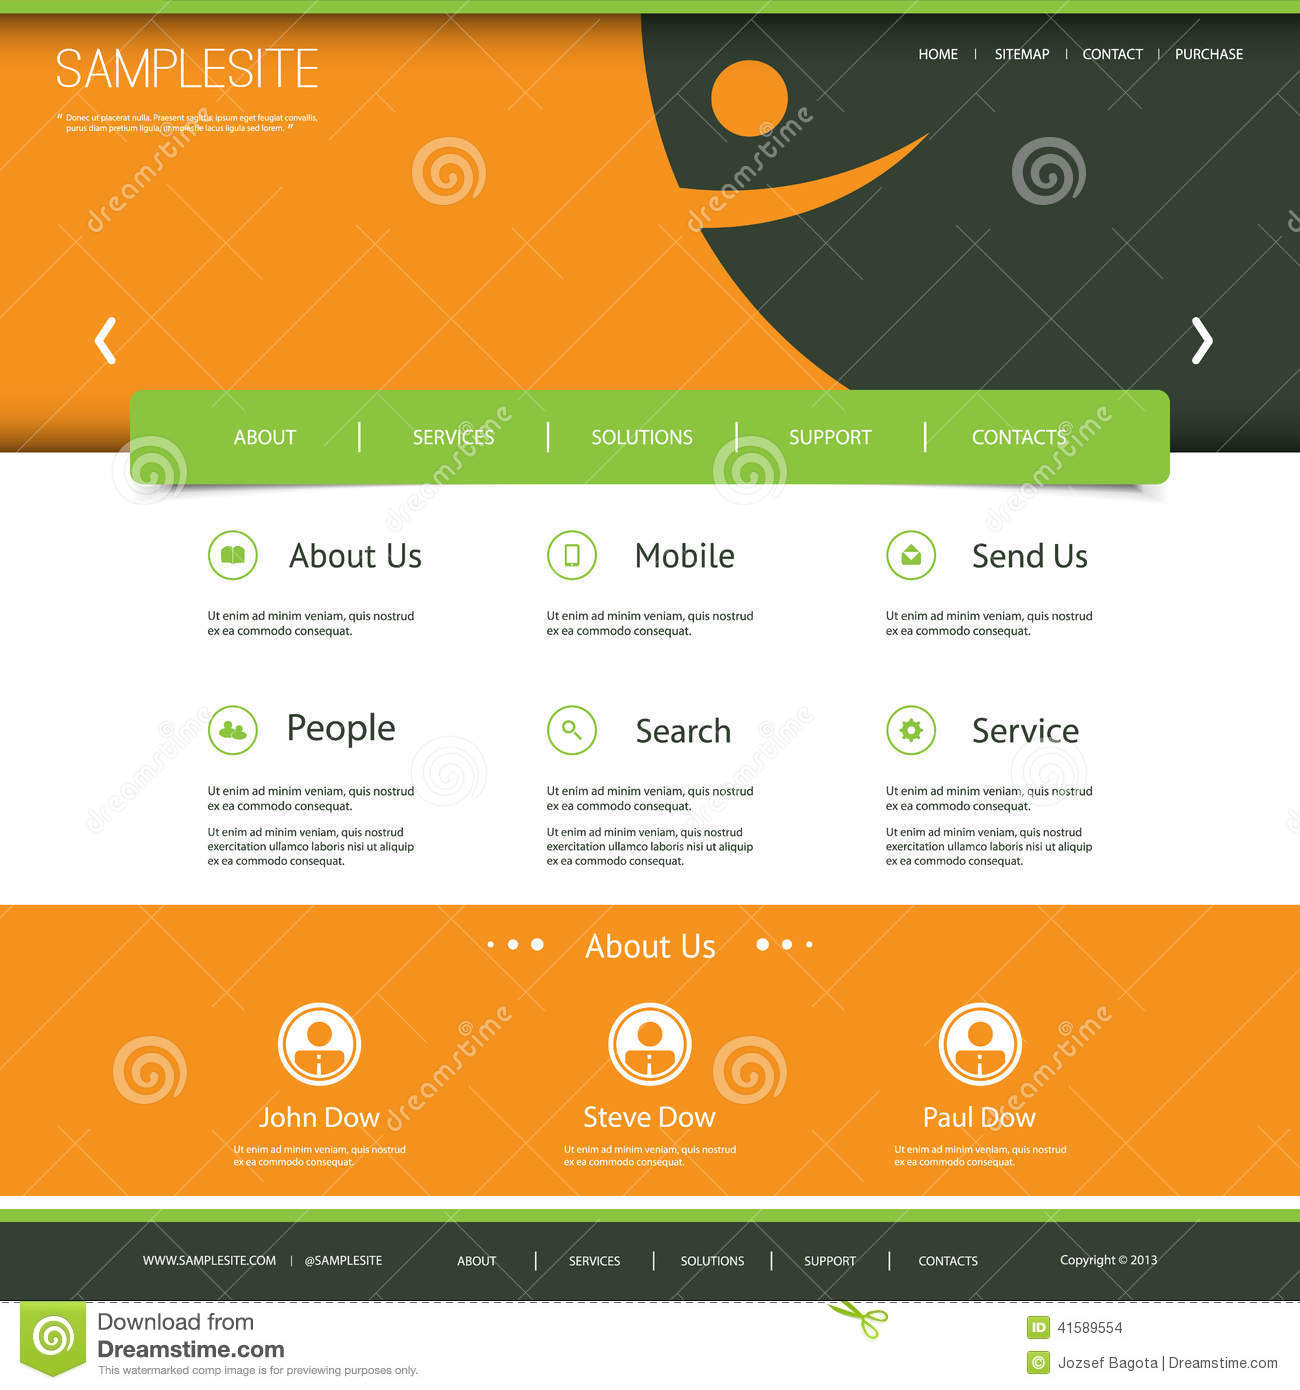 Homepage Web Design Header on web based design, web time design, web column design, web panel design, web link design, cool web design, web colors design, web module design, web design backgrounds, web source design, green web page design, web switch design, web line design, web search design, web address design, web filter design, web fonts design, website headings design, web truss design, web html design,